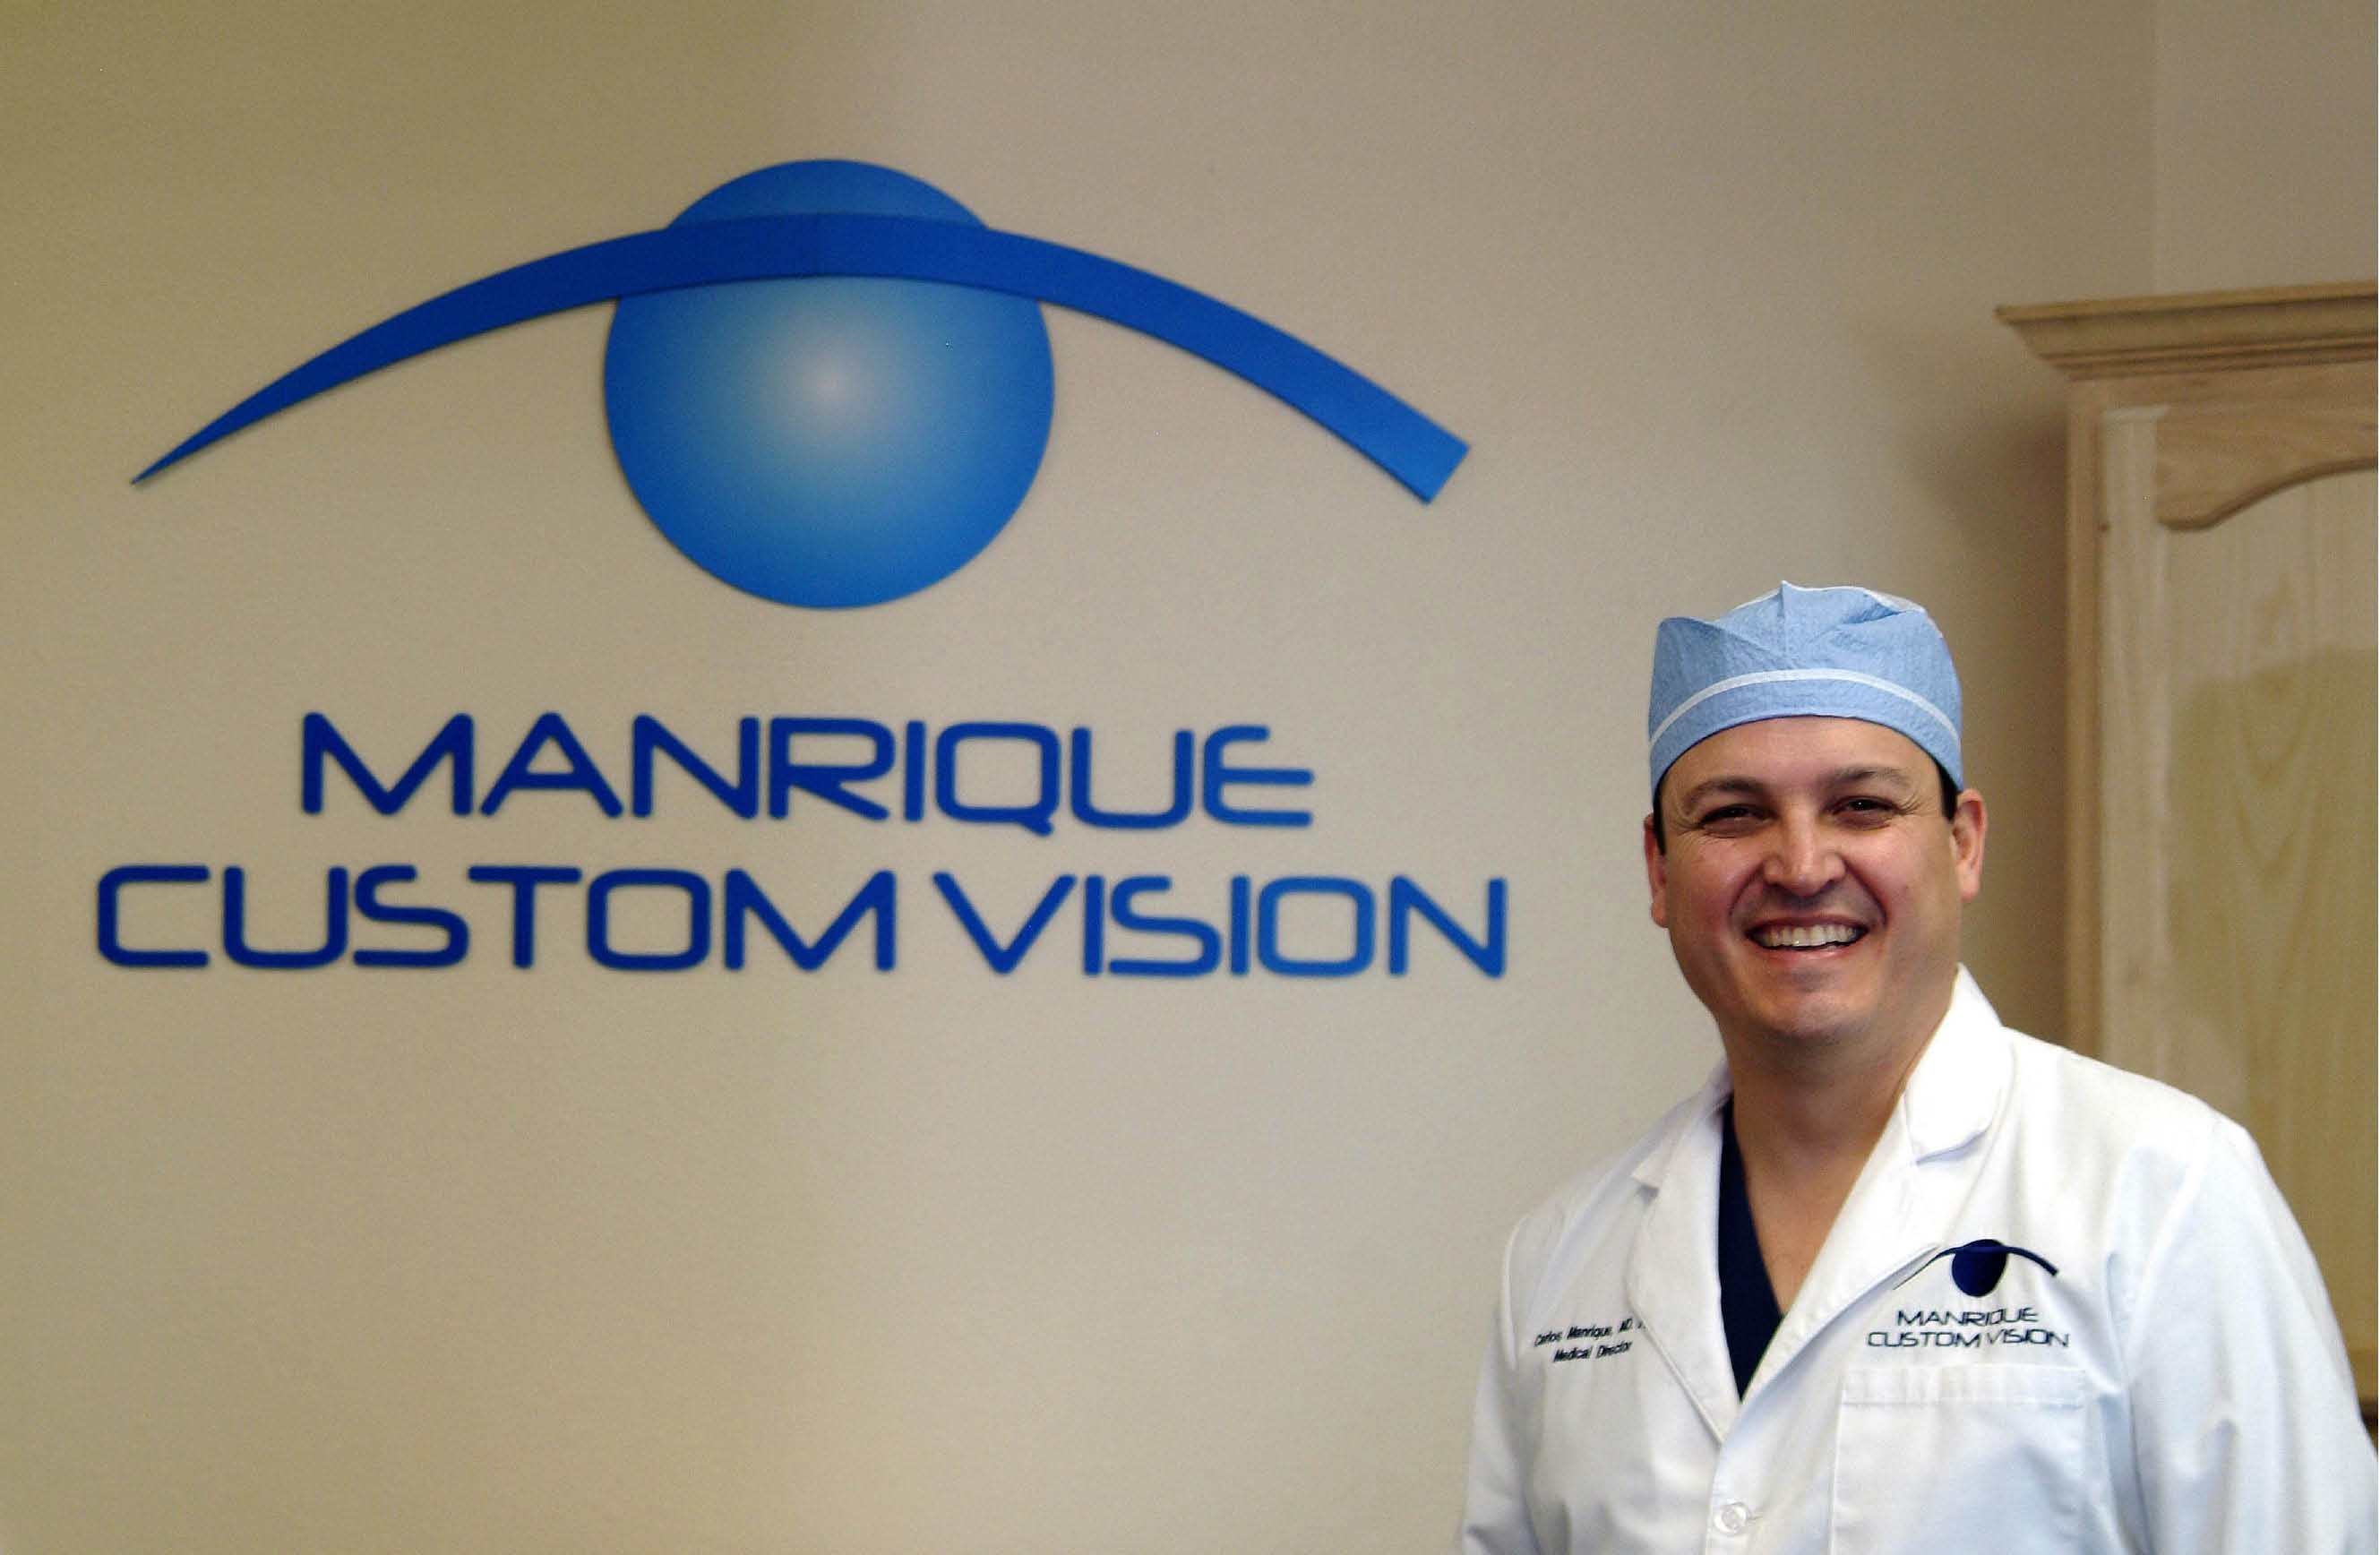 Dr. Carlos Manrique Photo